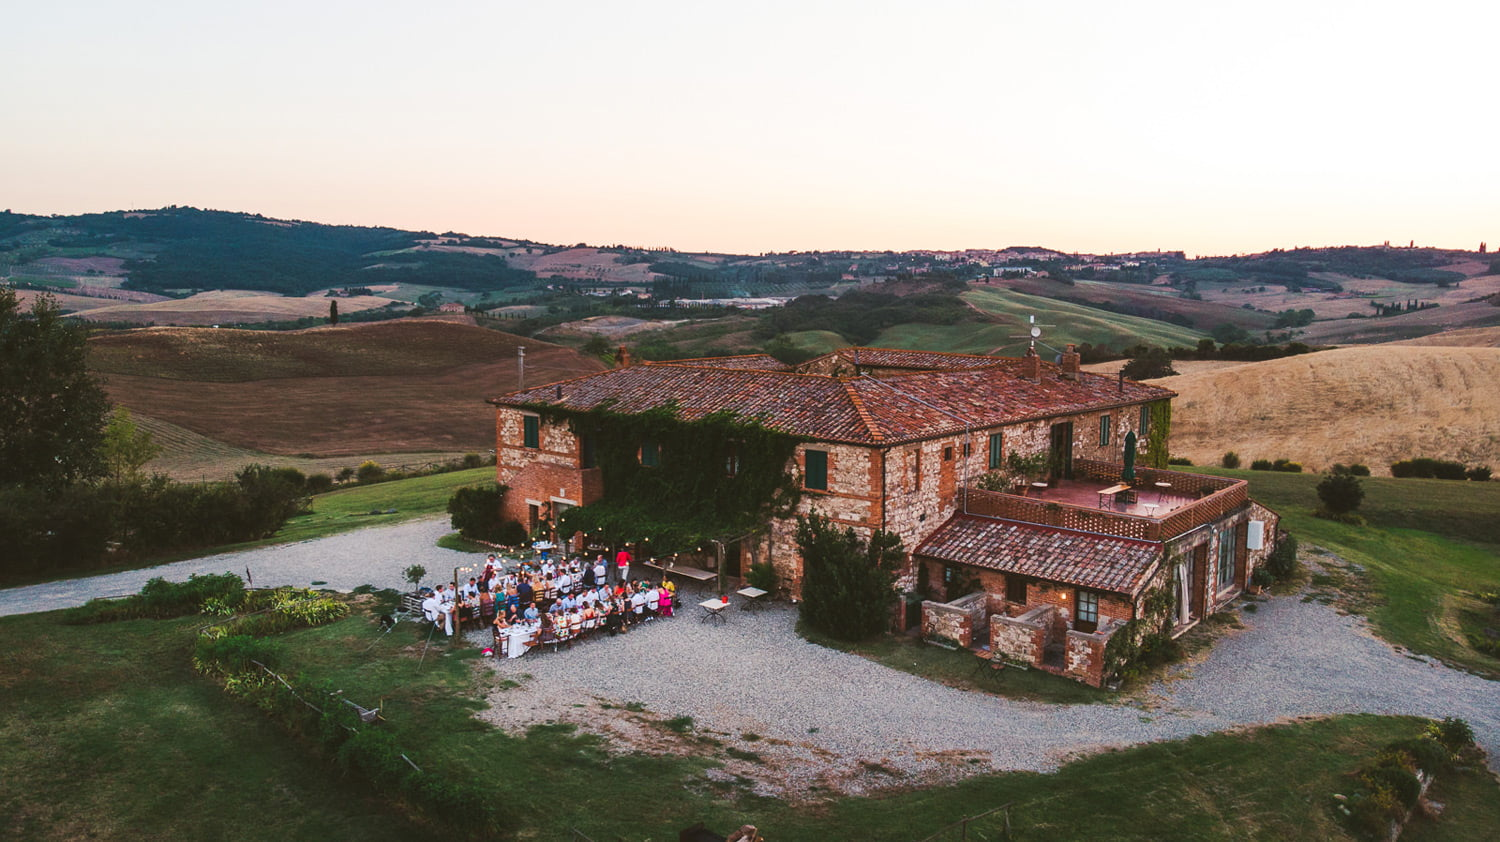 Countryside Wedding in Val d'Orcia, Agritursimo il Rigo, Countryside Wedding in Val d'Orcia, Agriturismo il Rigo, Federico Pannacci, Federico Pannacci